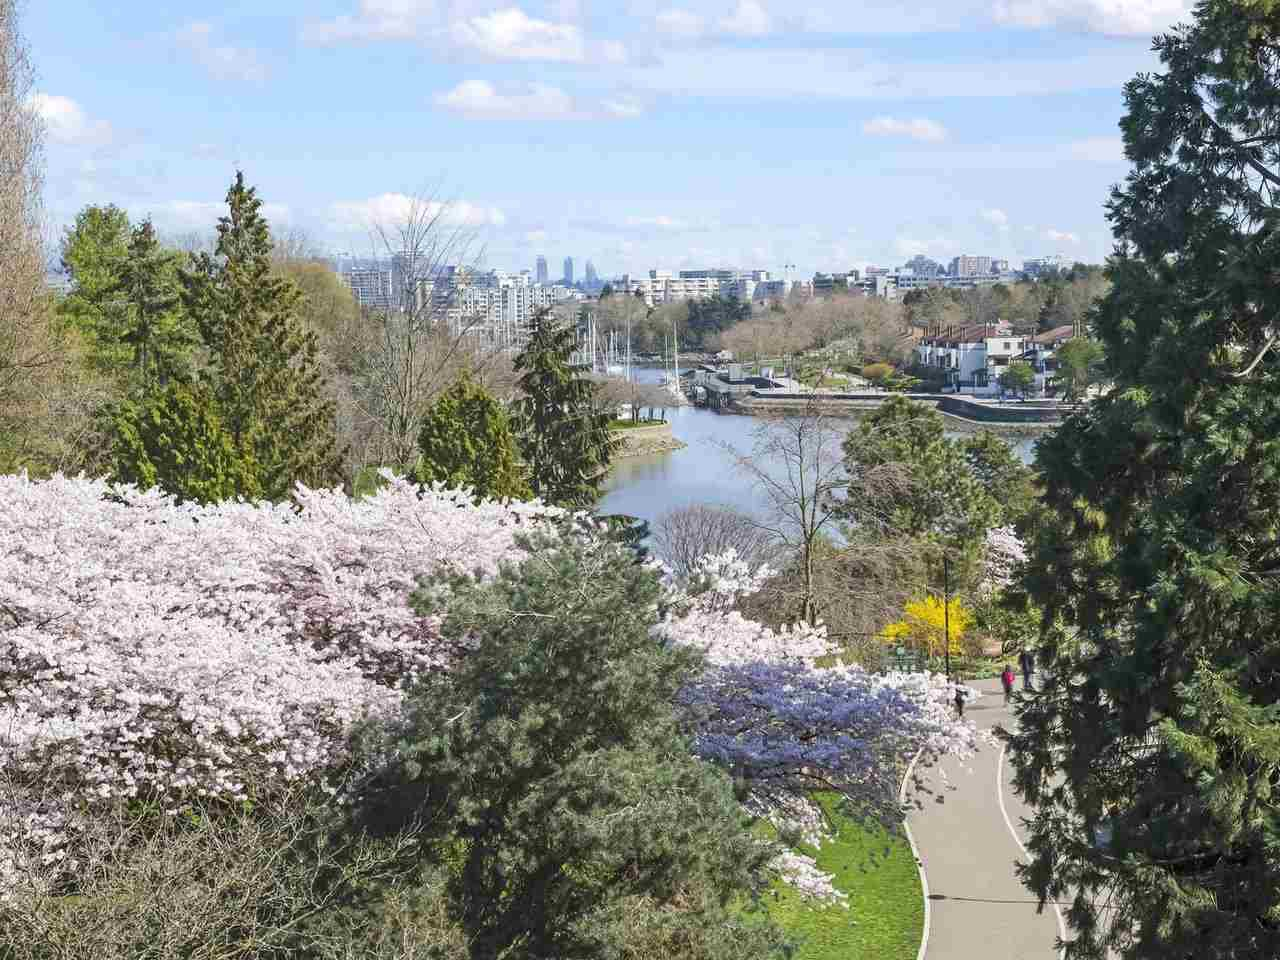 Main Photo: 66 1425 LAMEY'S MILL Road in Vancouver: False Creek Condo for sale (Vancouver West)  : MLS®# R2356838